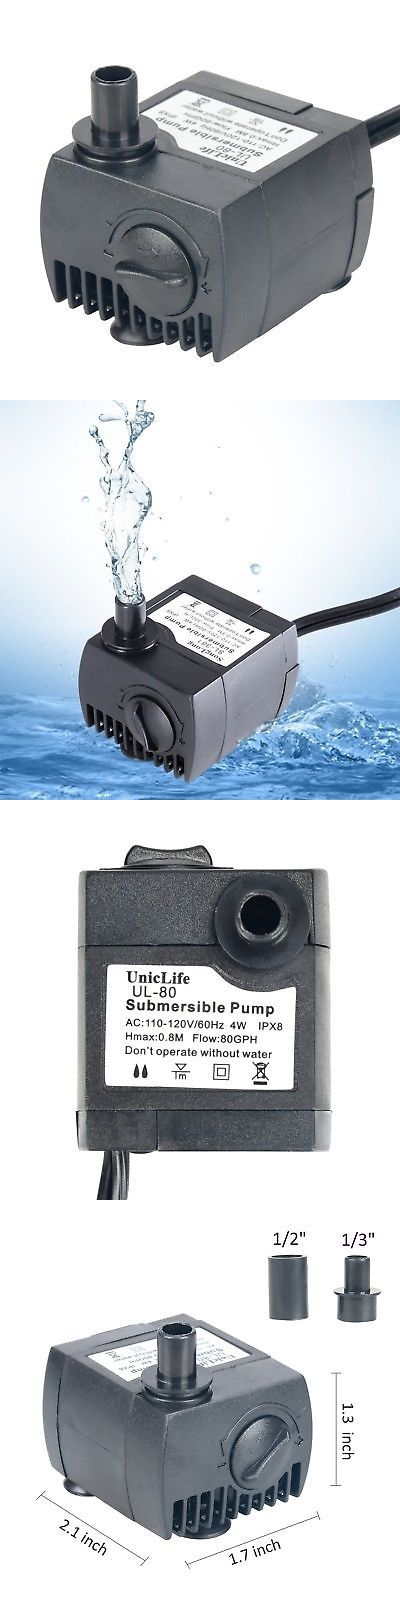 Pumps Water 77641 Uniclife 80 550gph Submersible Water Pump With 6ft Power Cord For Fountain Aq Buy It Now Only 10 89 On Water Pumps Submersible Ebay